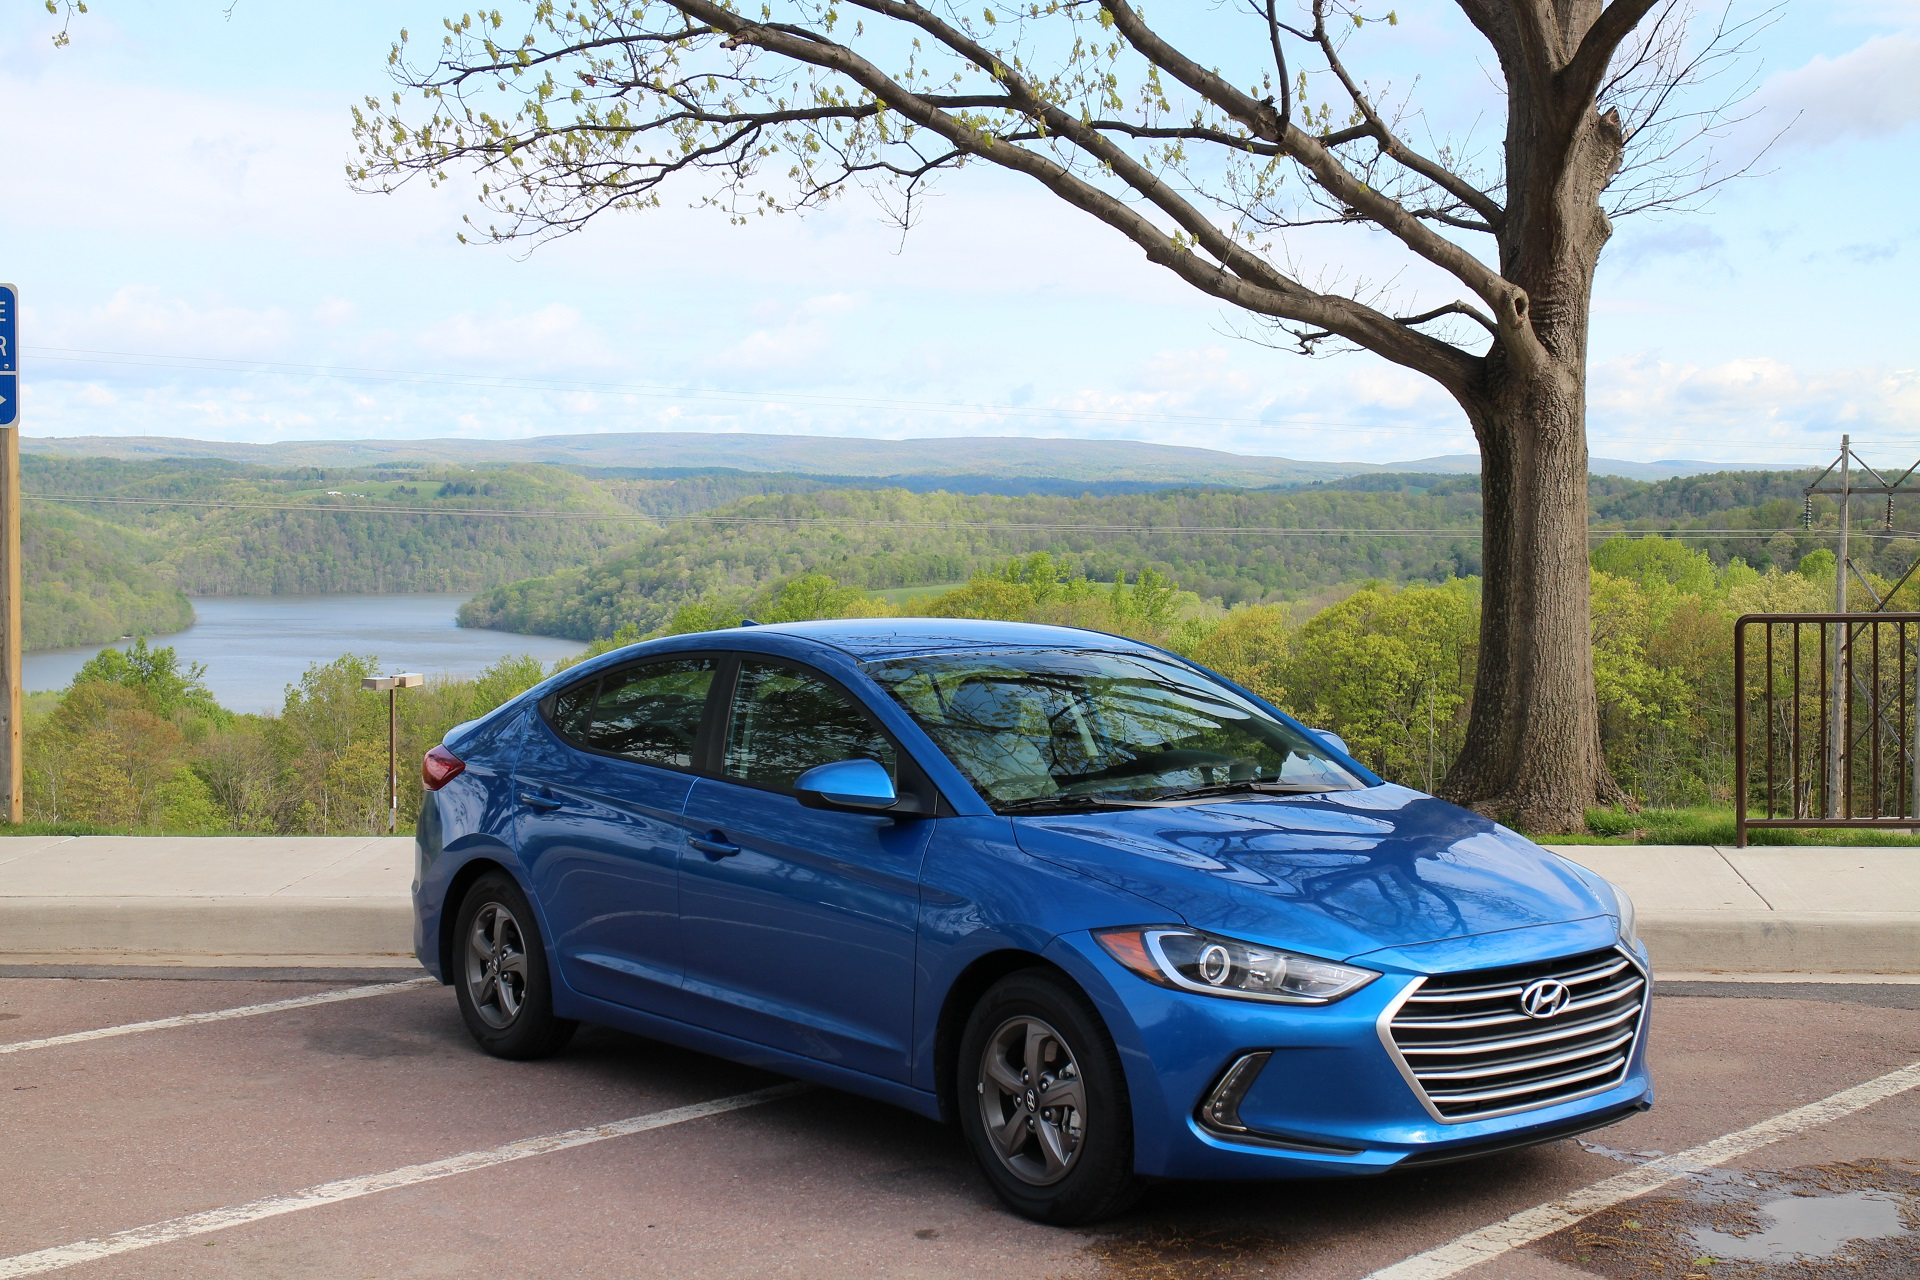 2019 Honda Civic Vs 2019 Hyundai Elantra In Dover De Price Honda